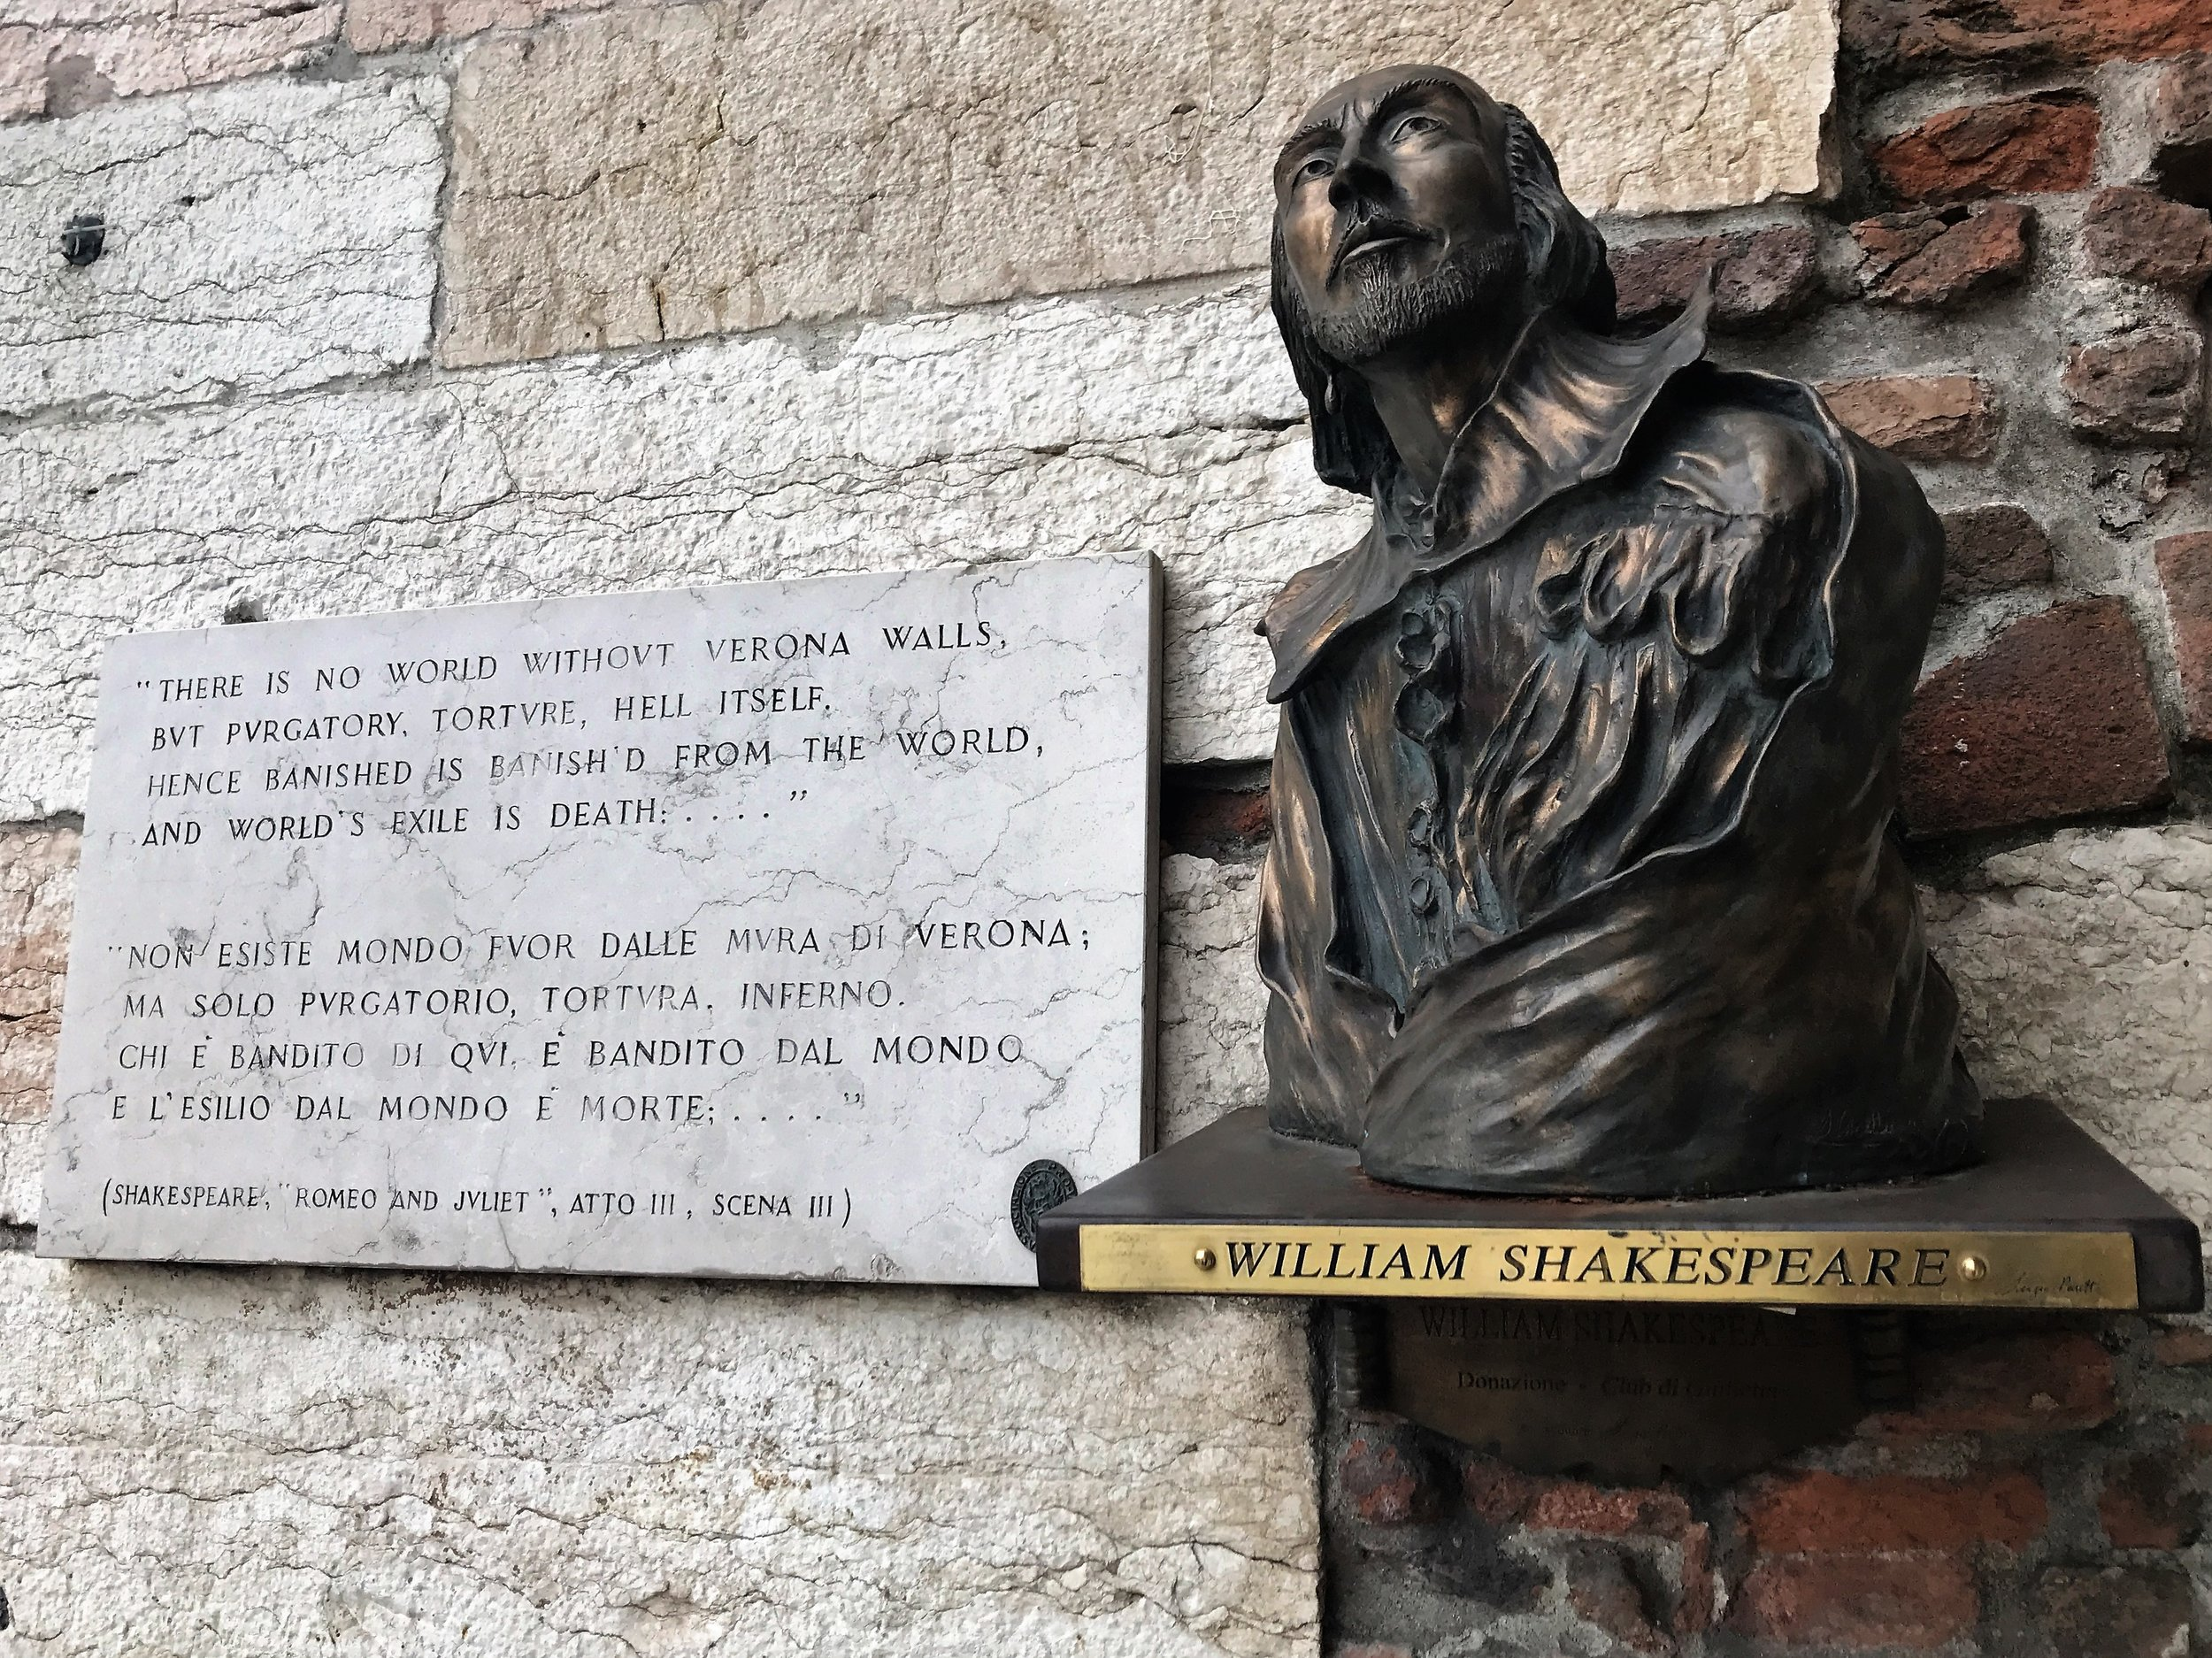 Shakespeare's likeness and words on a wall in Verona